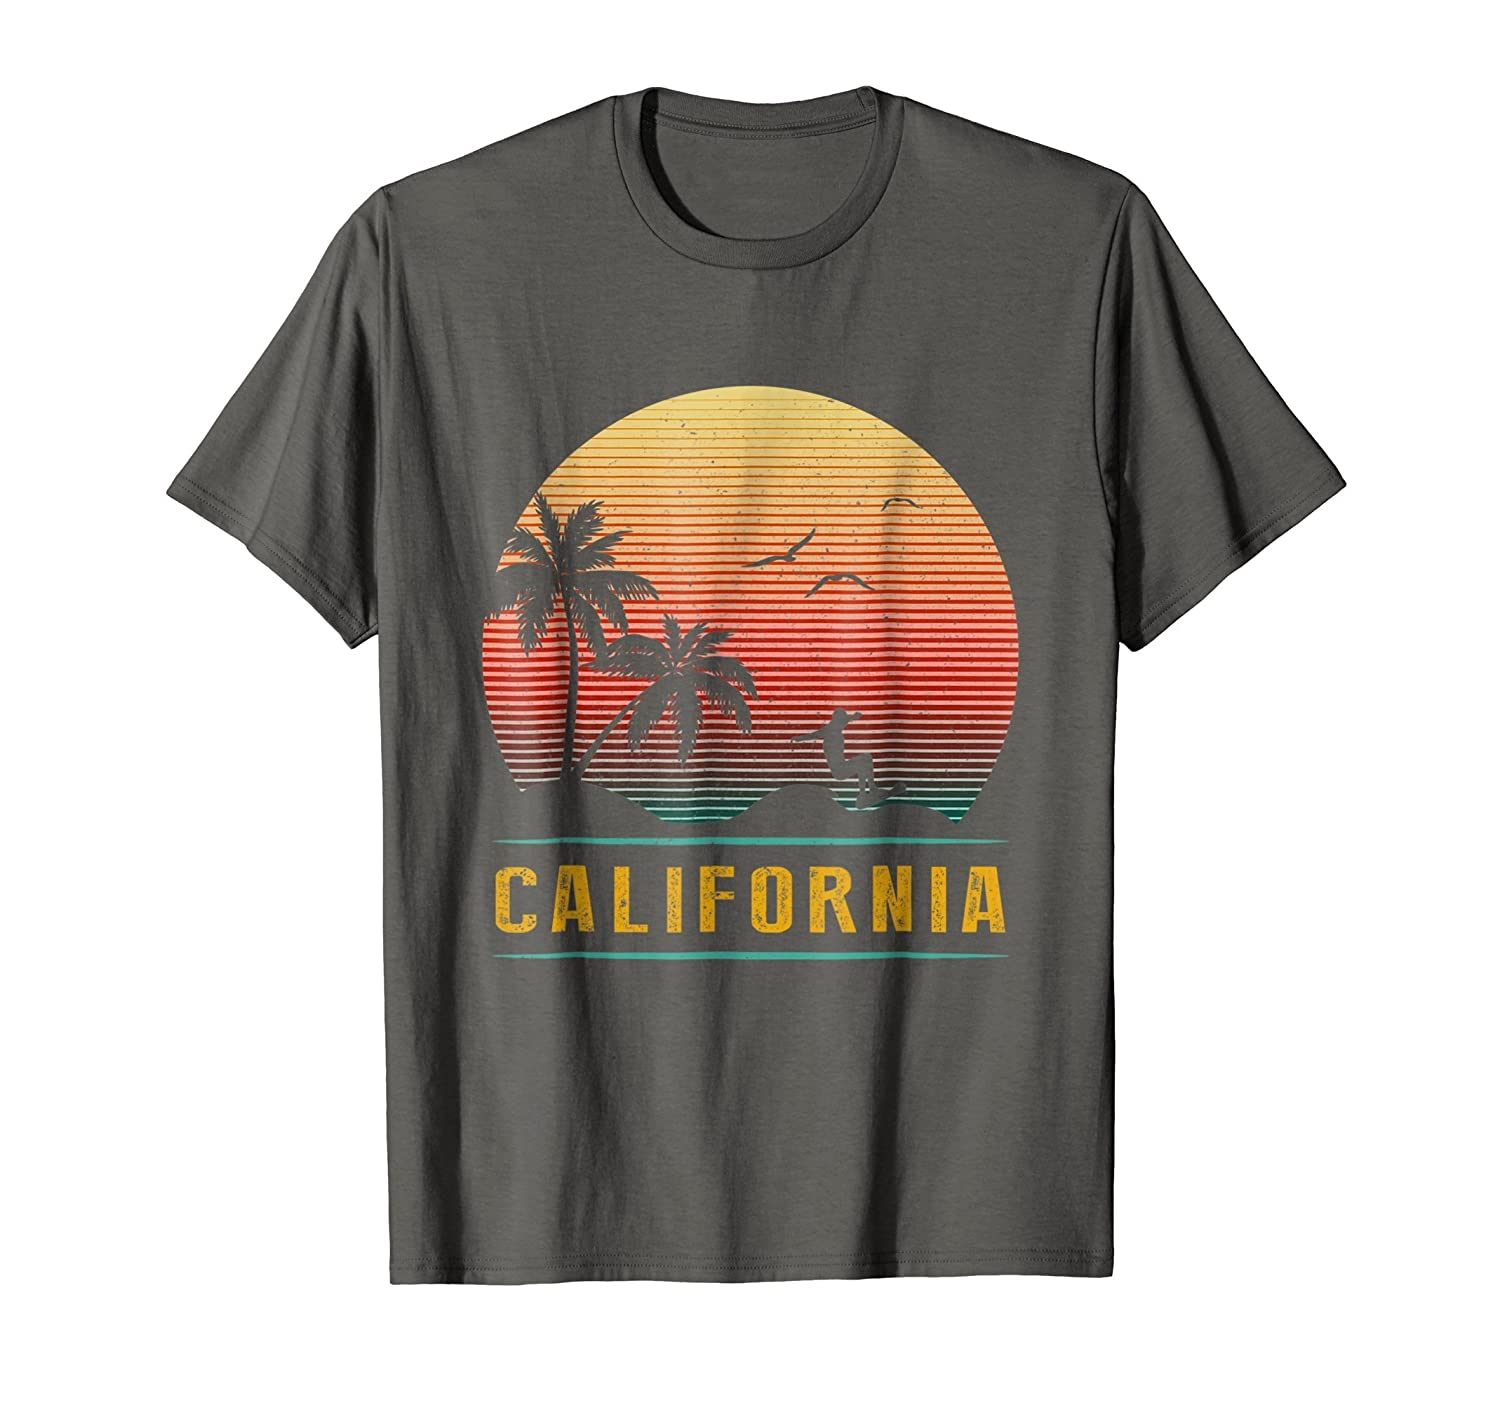 f8df04ab Imported Machine wash cold with like colors, dry low heat. Premium  California Vintage Retro T-Shirt - 70s throwback Surf surfing tee ...